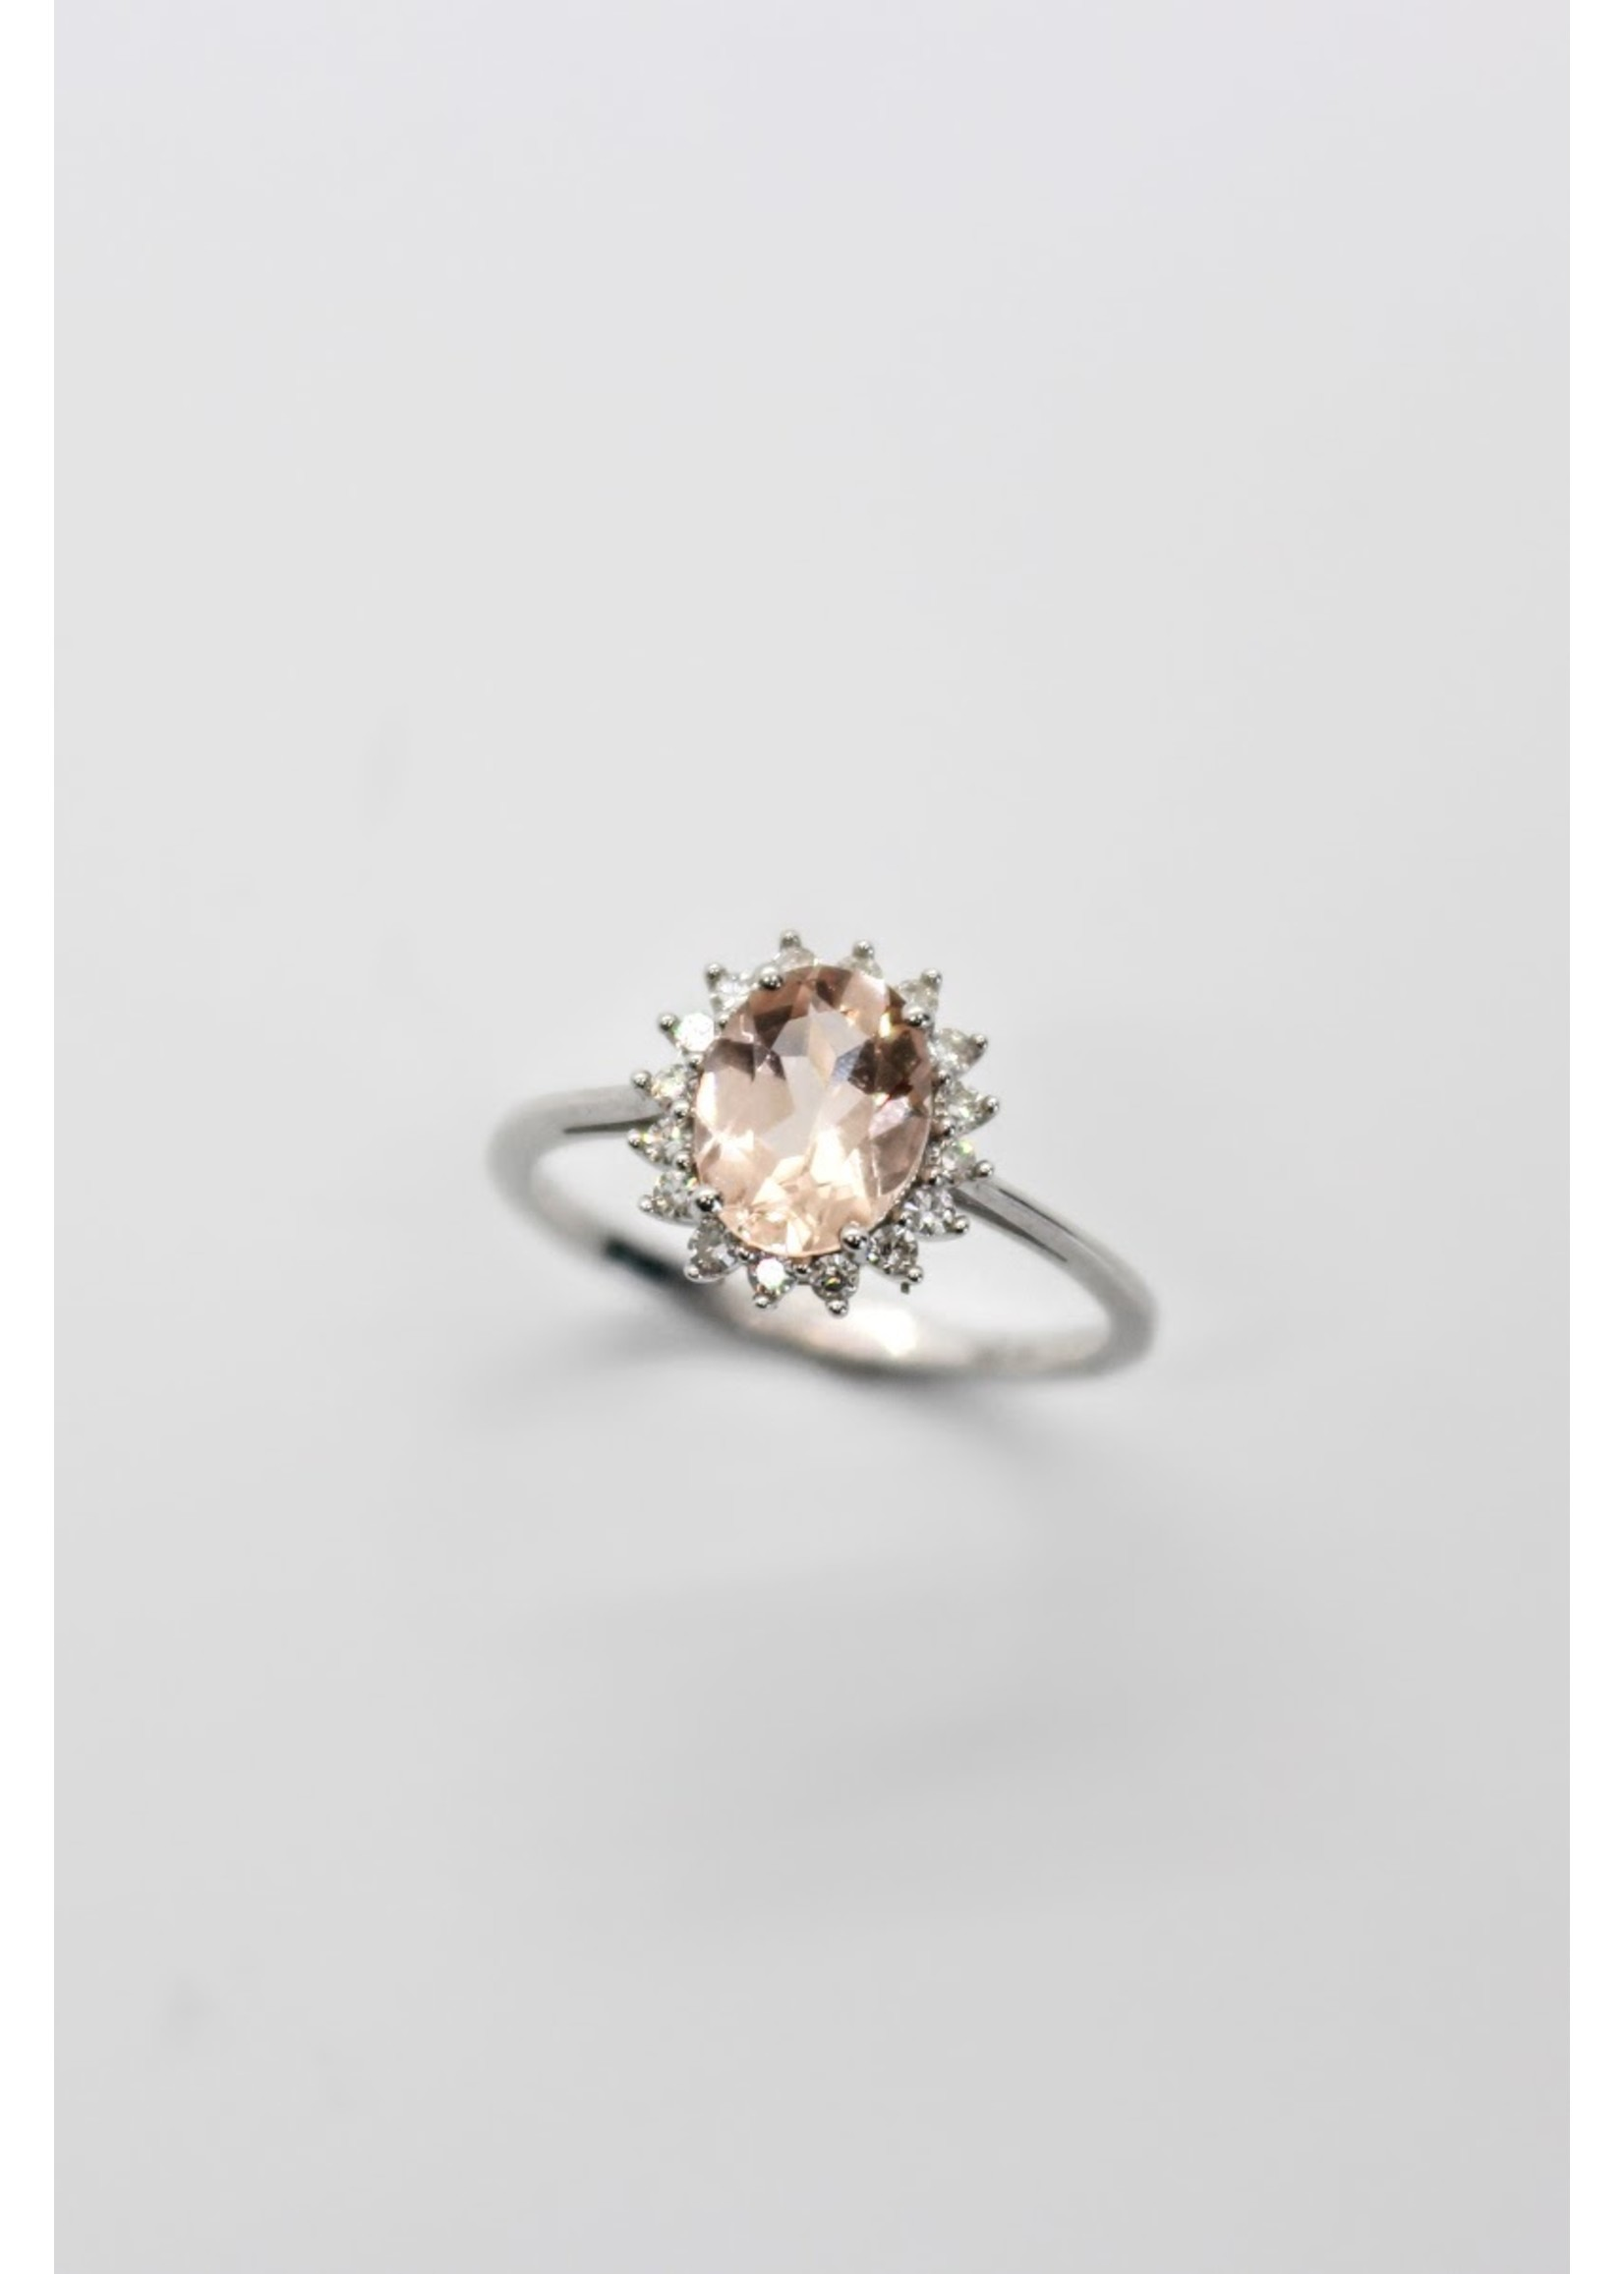 PARÉ Bague Solitaire Diana Or blanc 10K avec Morganite et Diamants